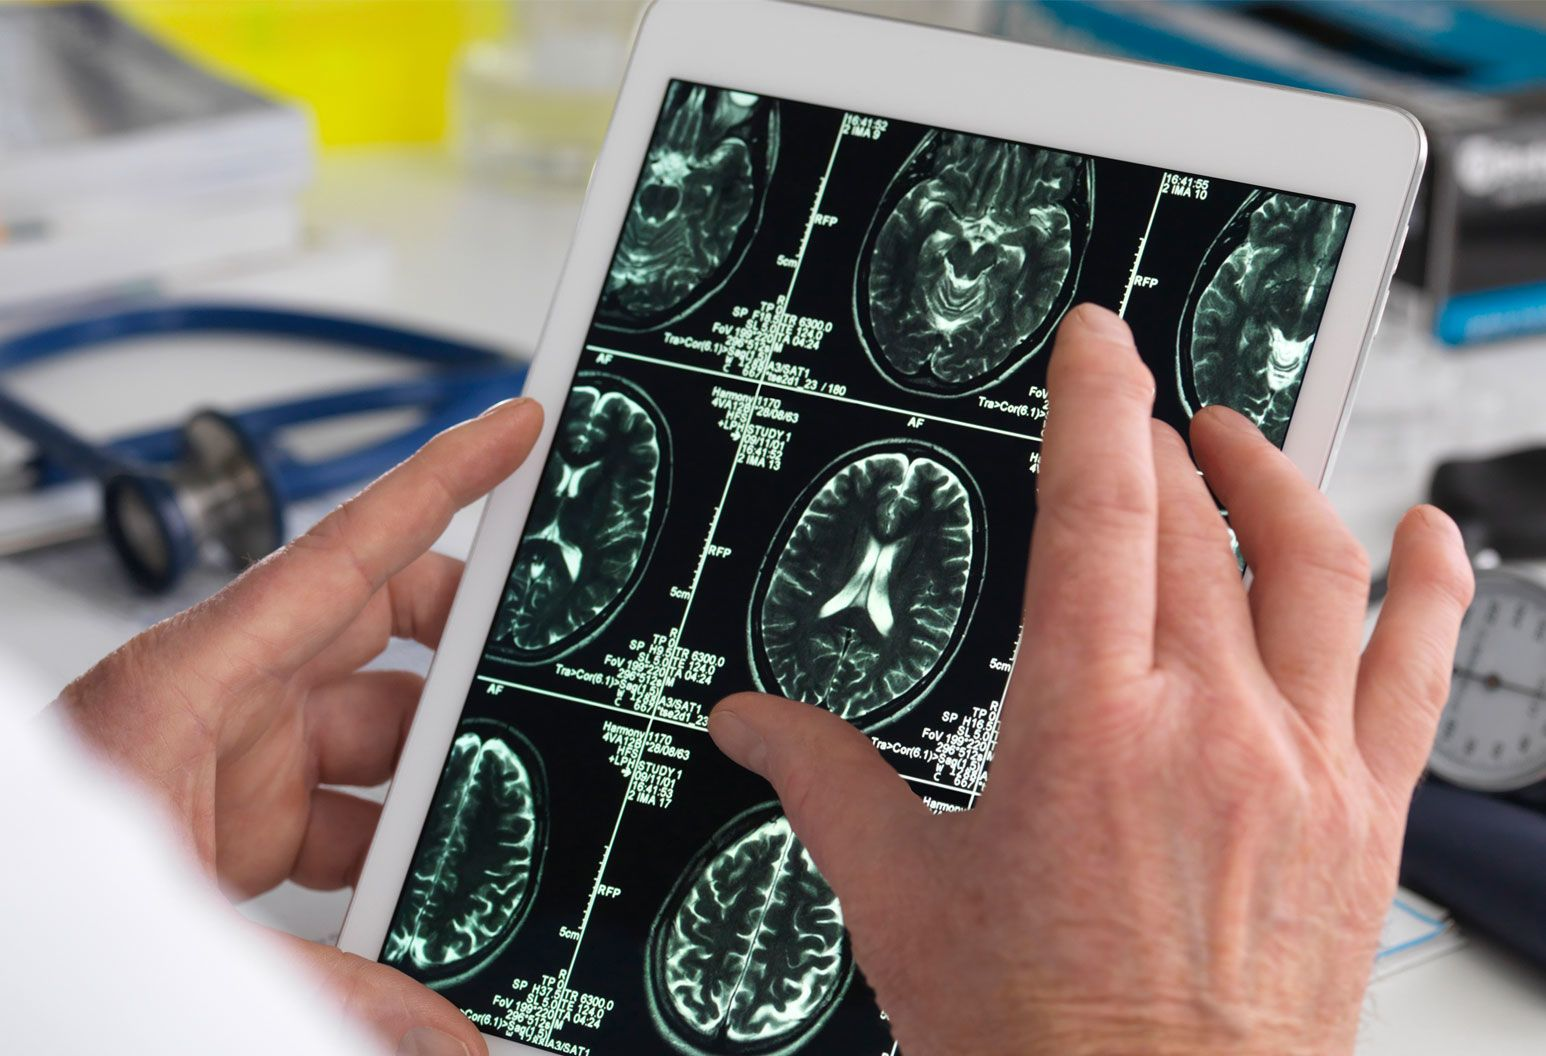 Close up view of a brain scan on a hand held tablet